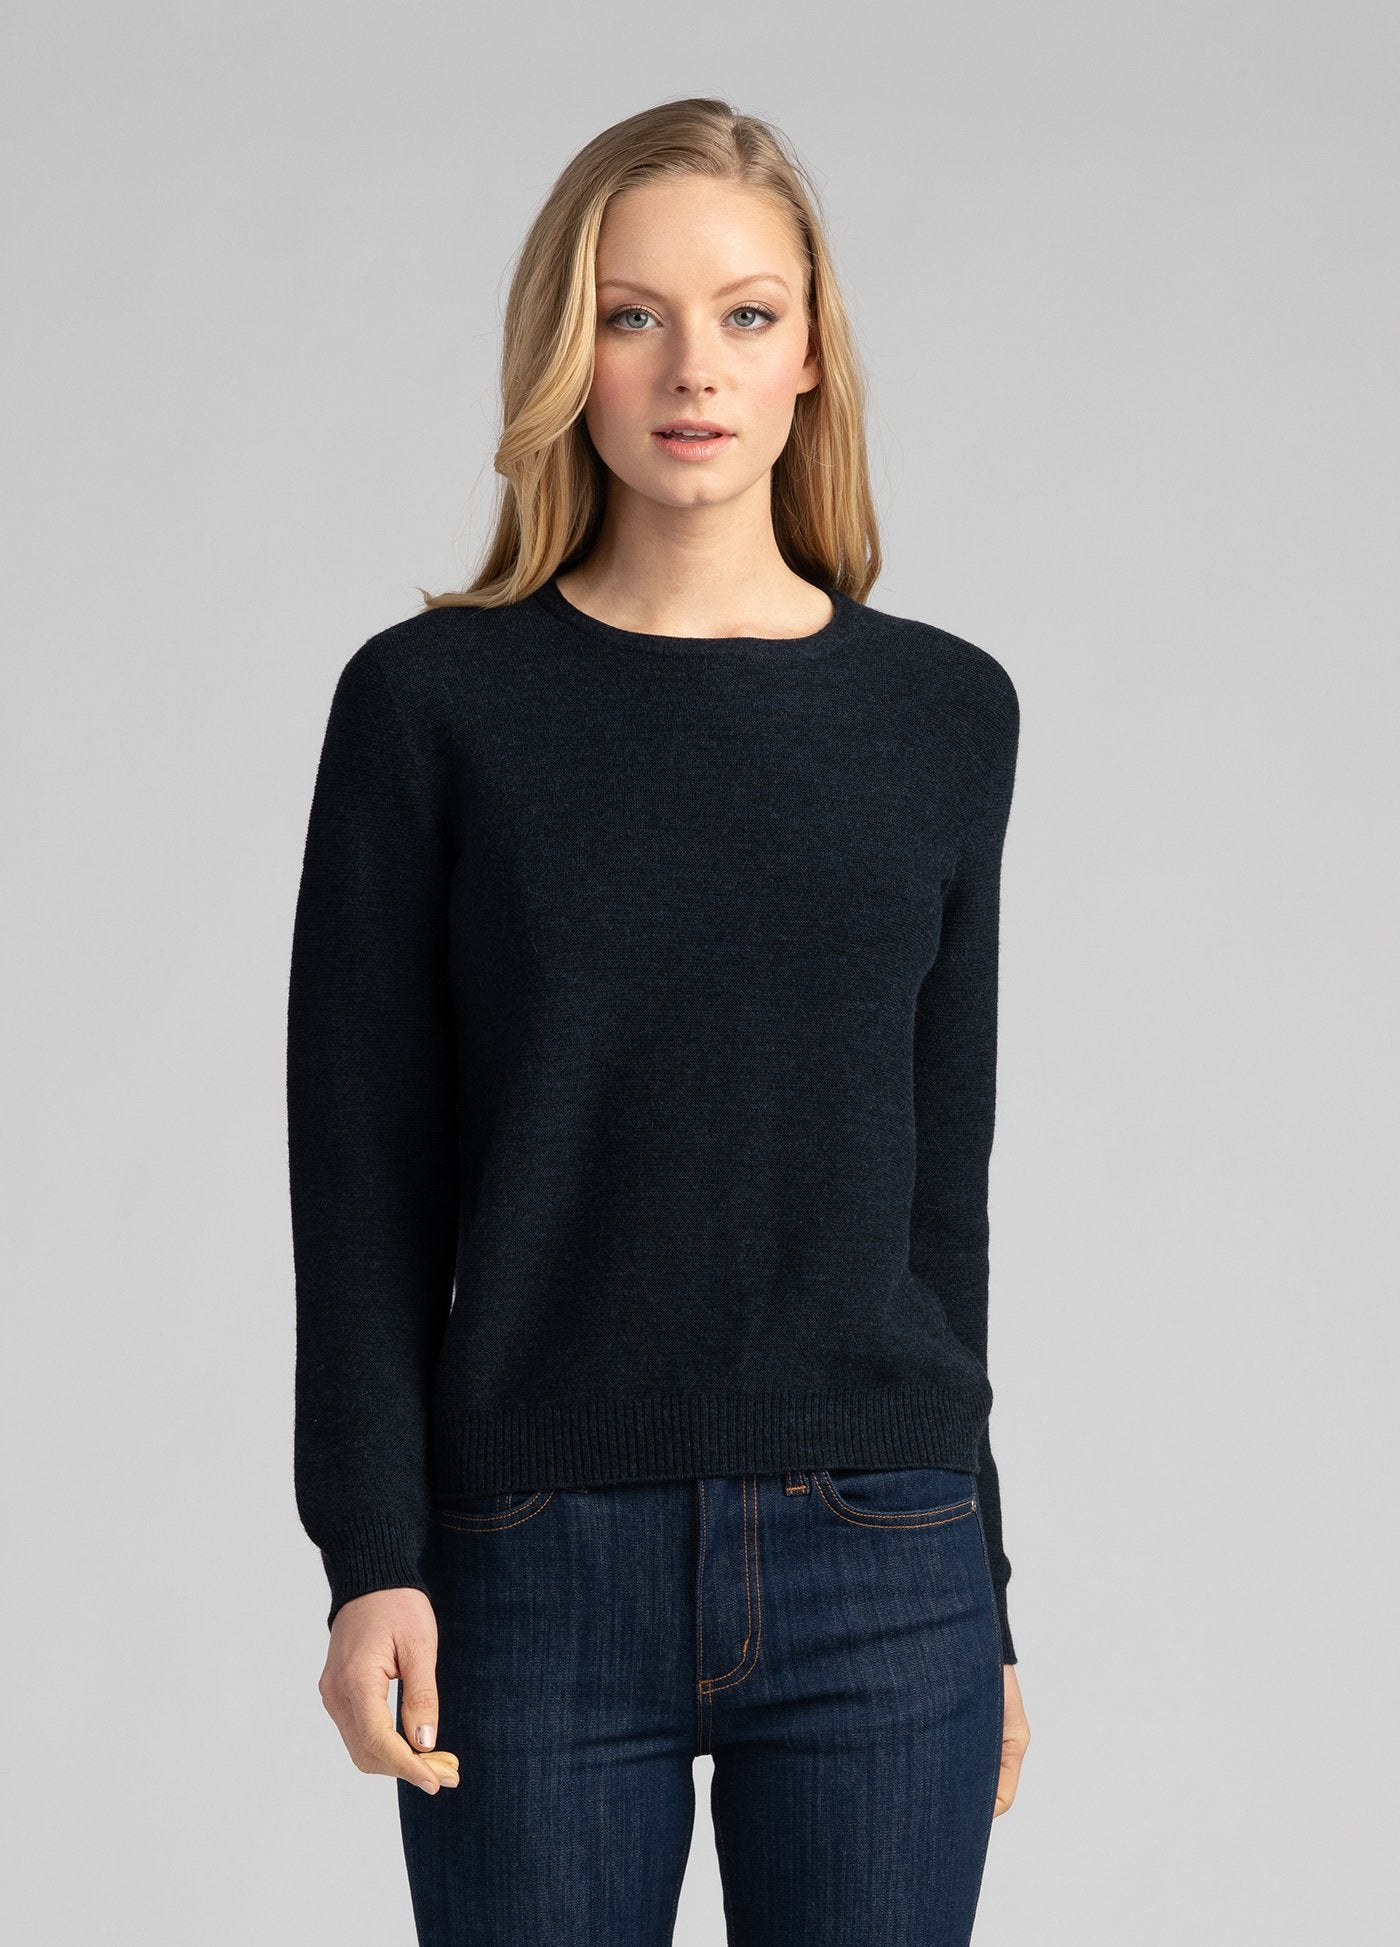 STITCH SWEATER - Woolshed Gallery